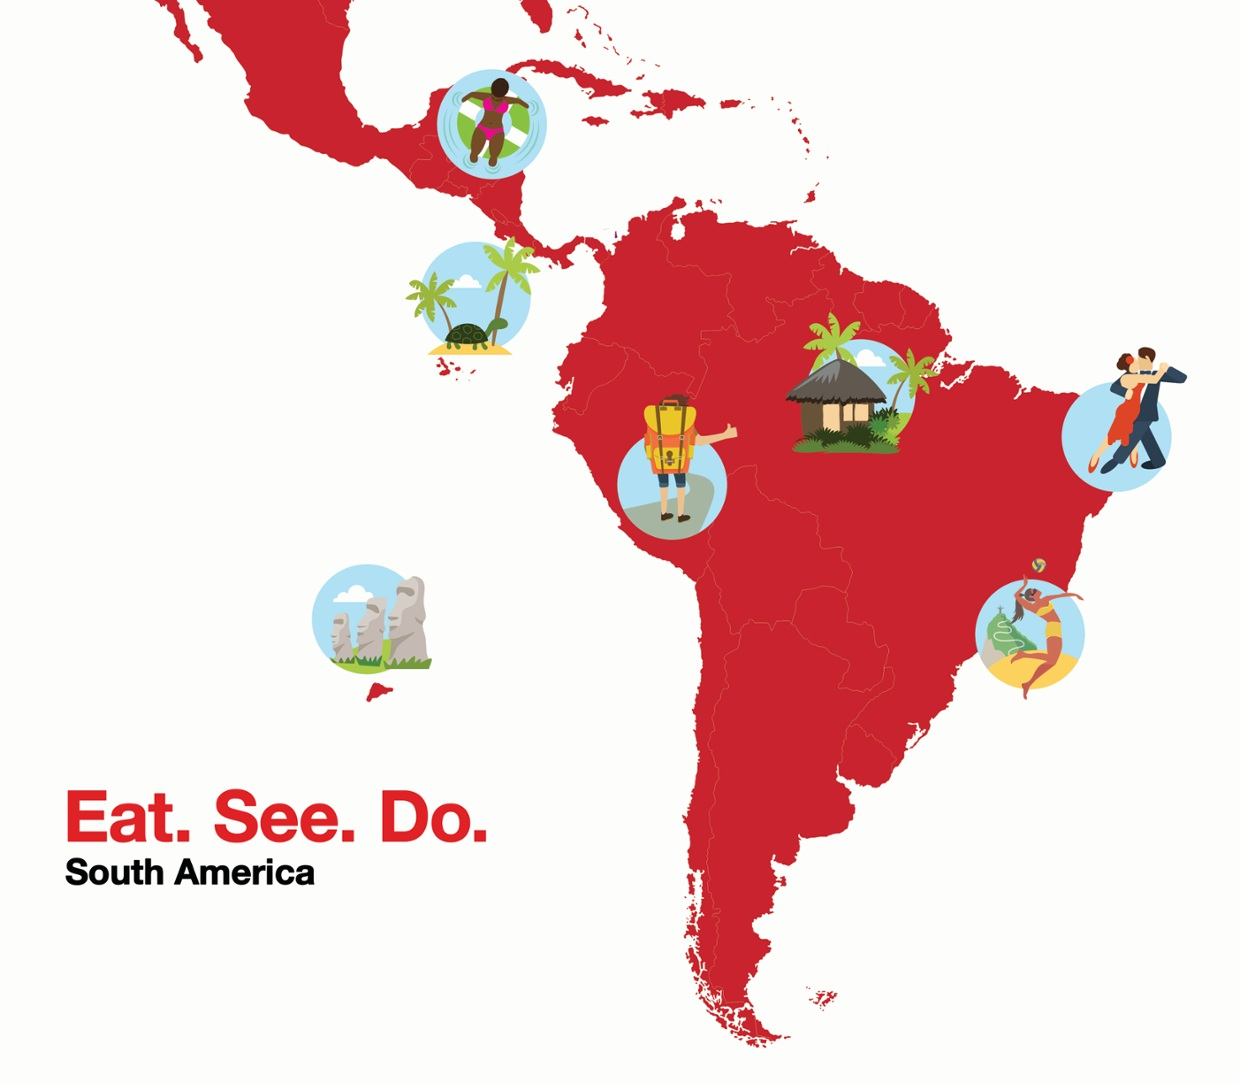 TravelPass #3: Eat. See. Do. Discover More with TravelPass.